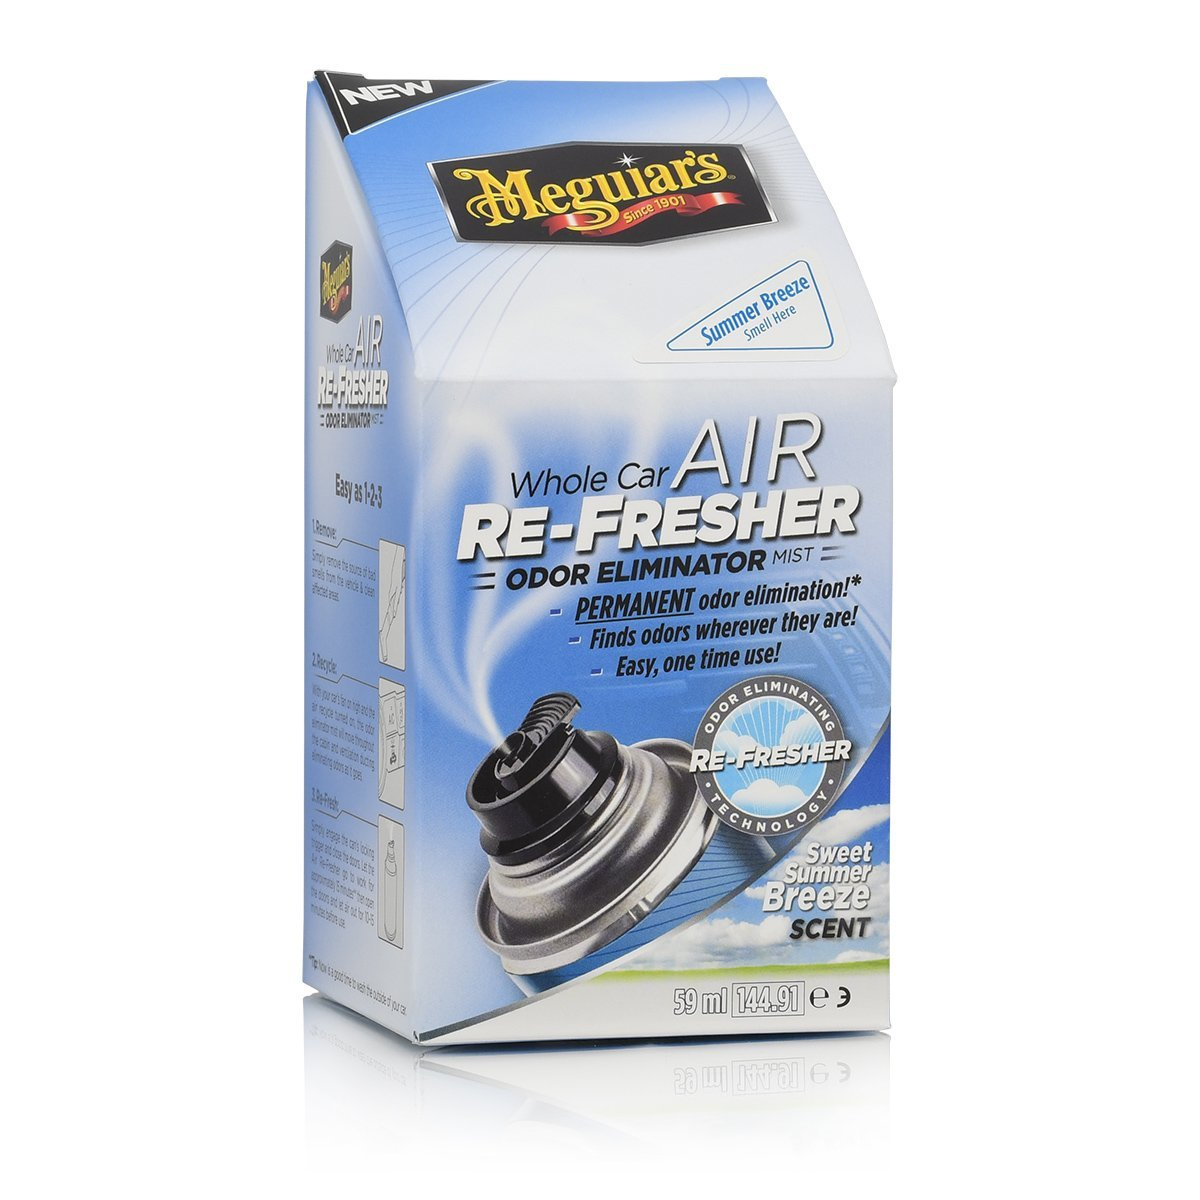 Meguiars Whole Car Air Re-Fresher Odor Eliminator Summer Breeze Scent